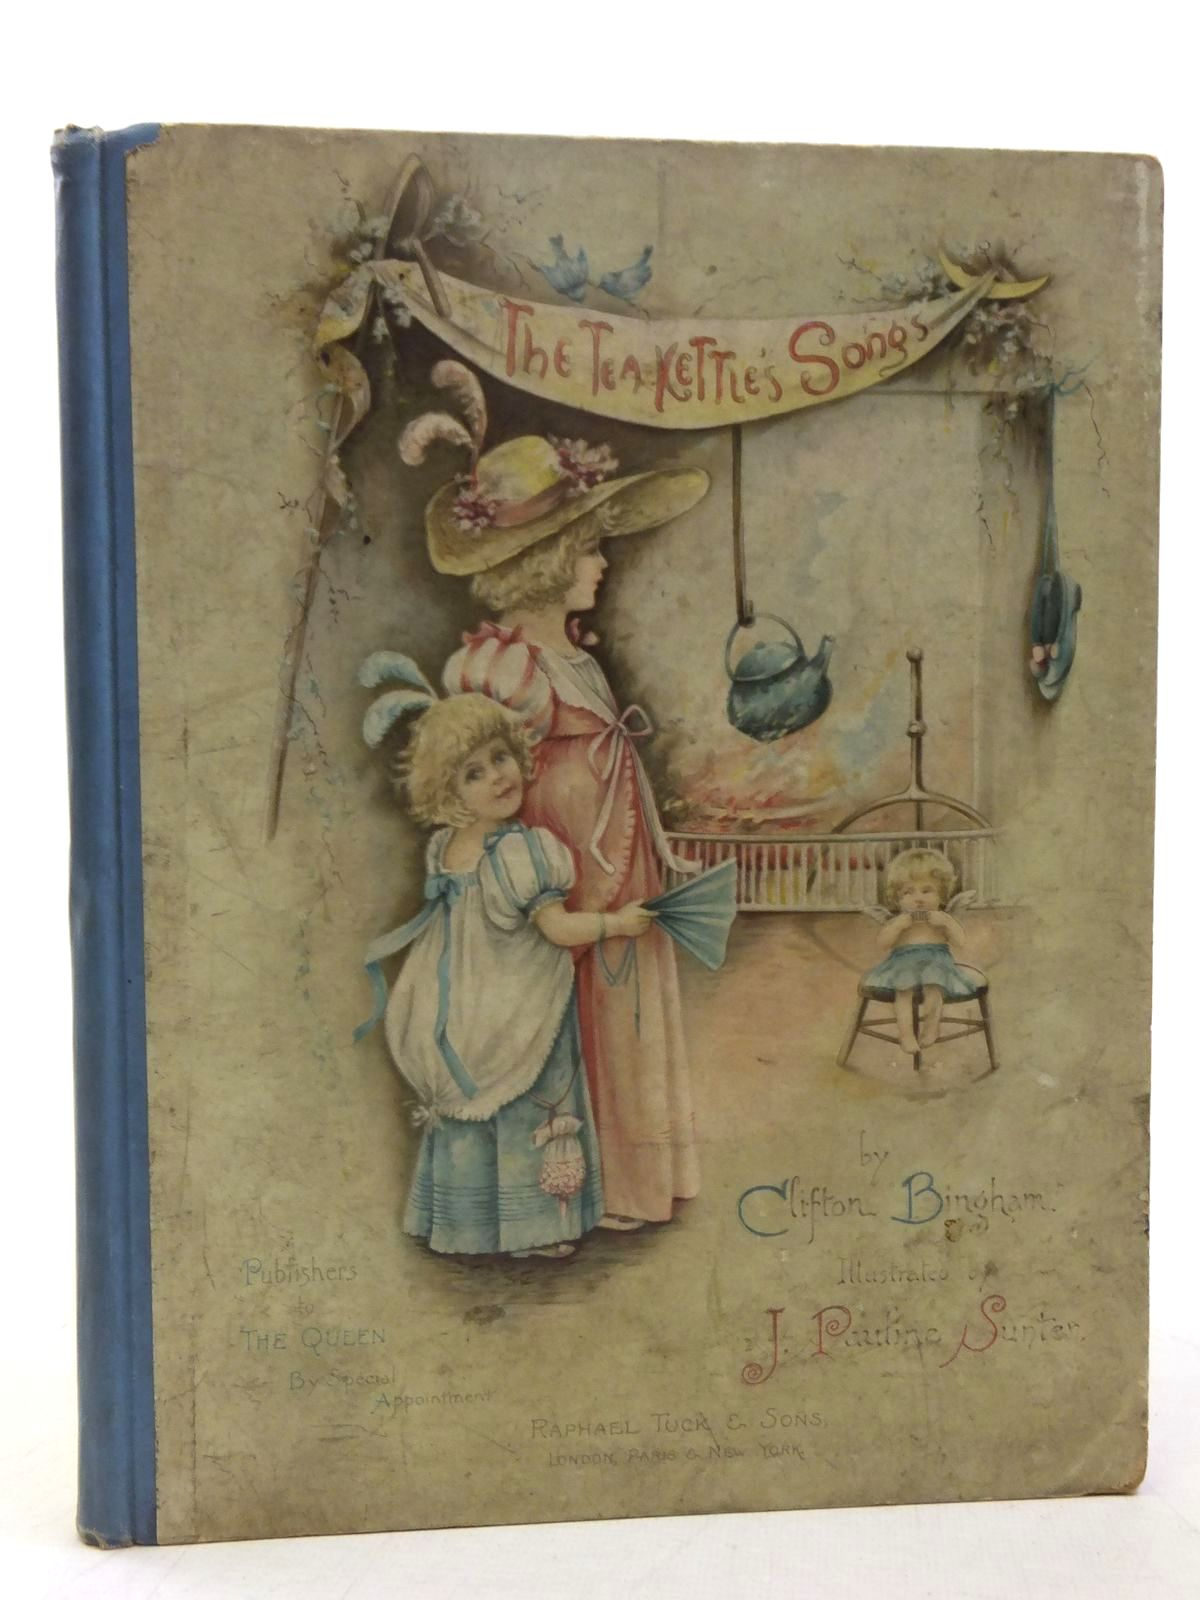 Photo of THE TEA-KETTLE'S SONGS written by Bingham, Clifton illustrated by Sunter, J. Pauline published by Raphael Tuck & Sons (STOCK CODE: 2118166)  for sale by Stella & Rose's Books